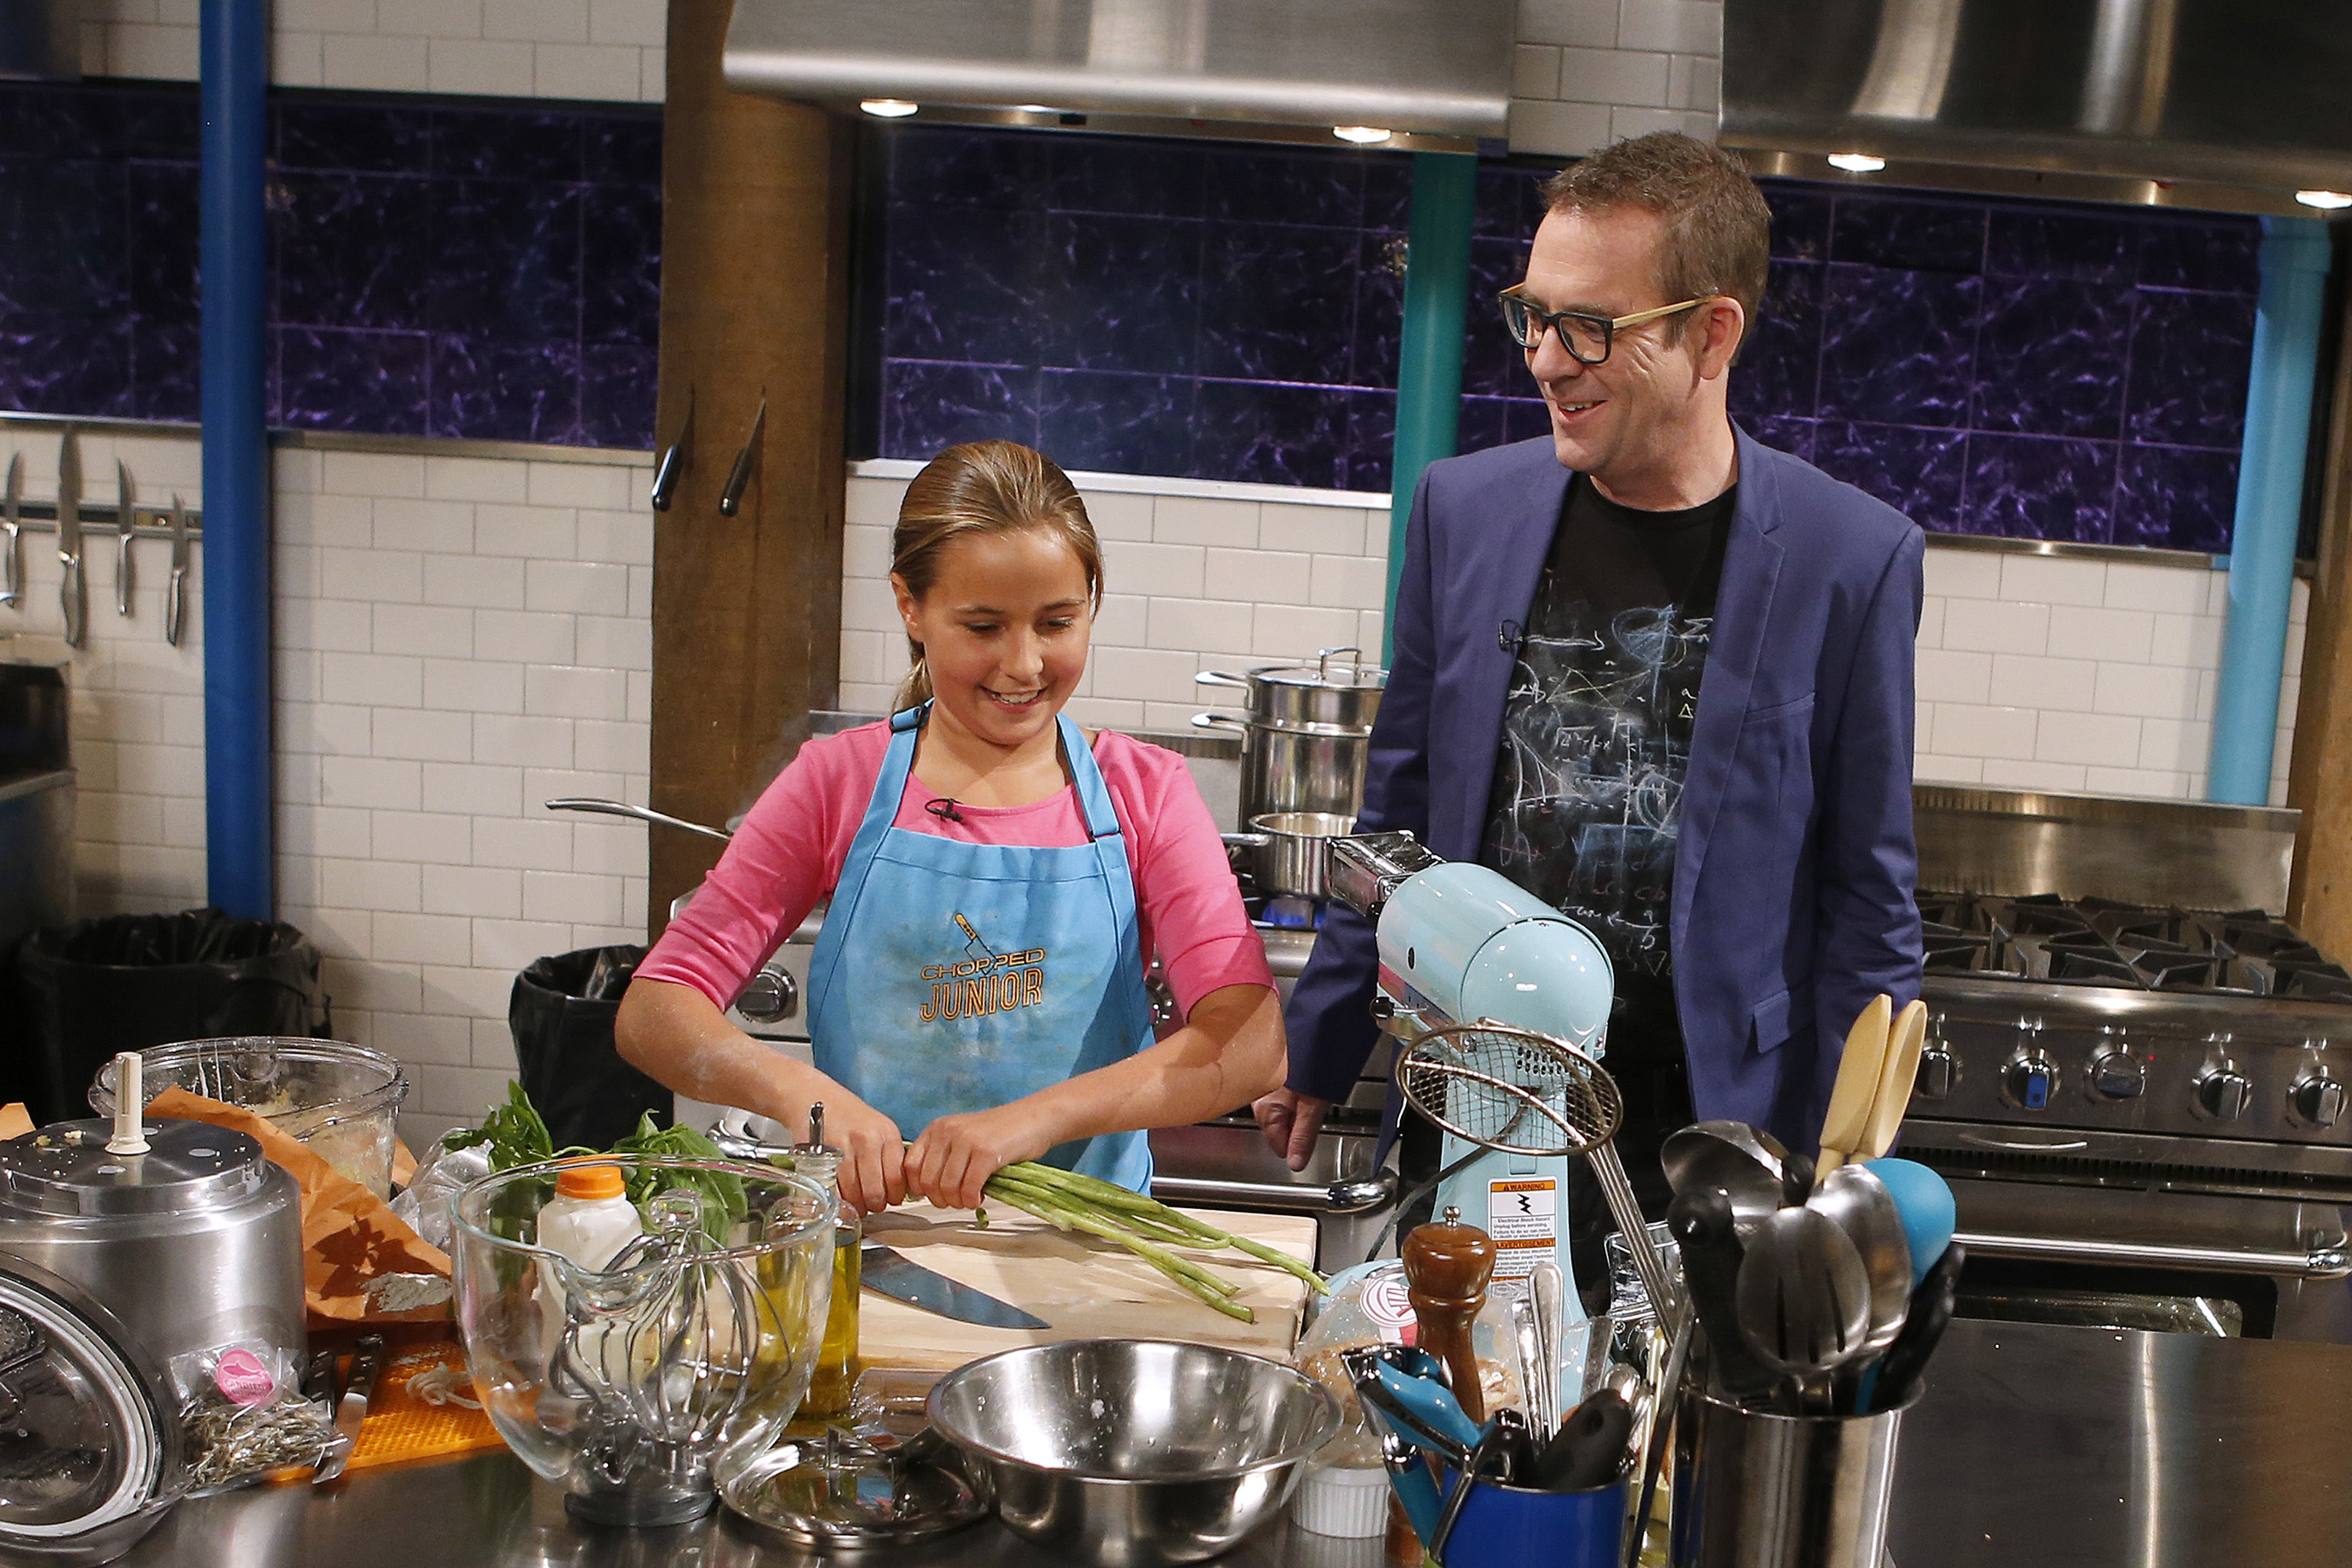 Chopped Food Network fall into chopped-tober on food network with new tournament